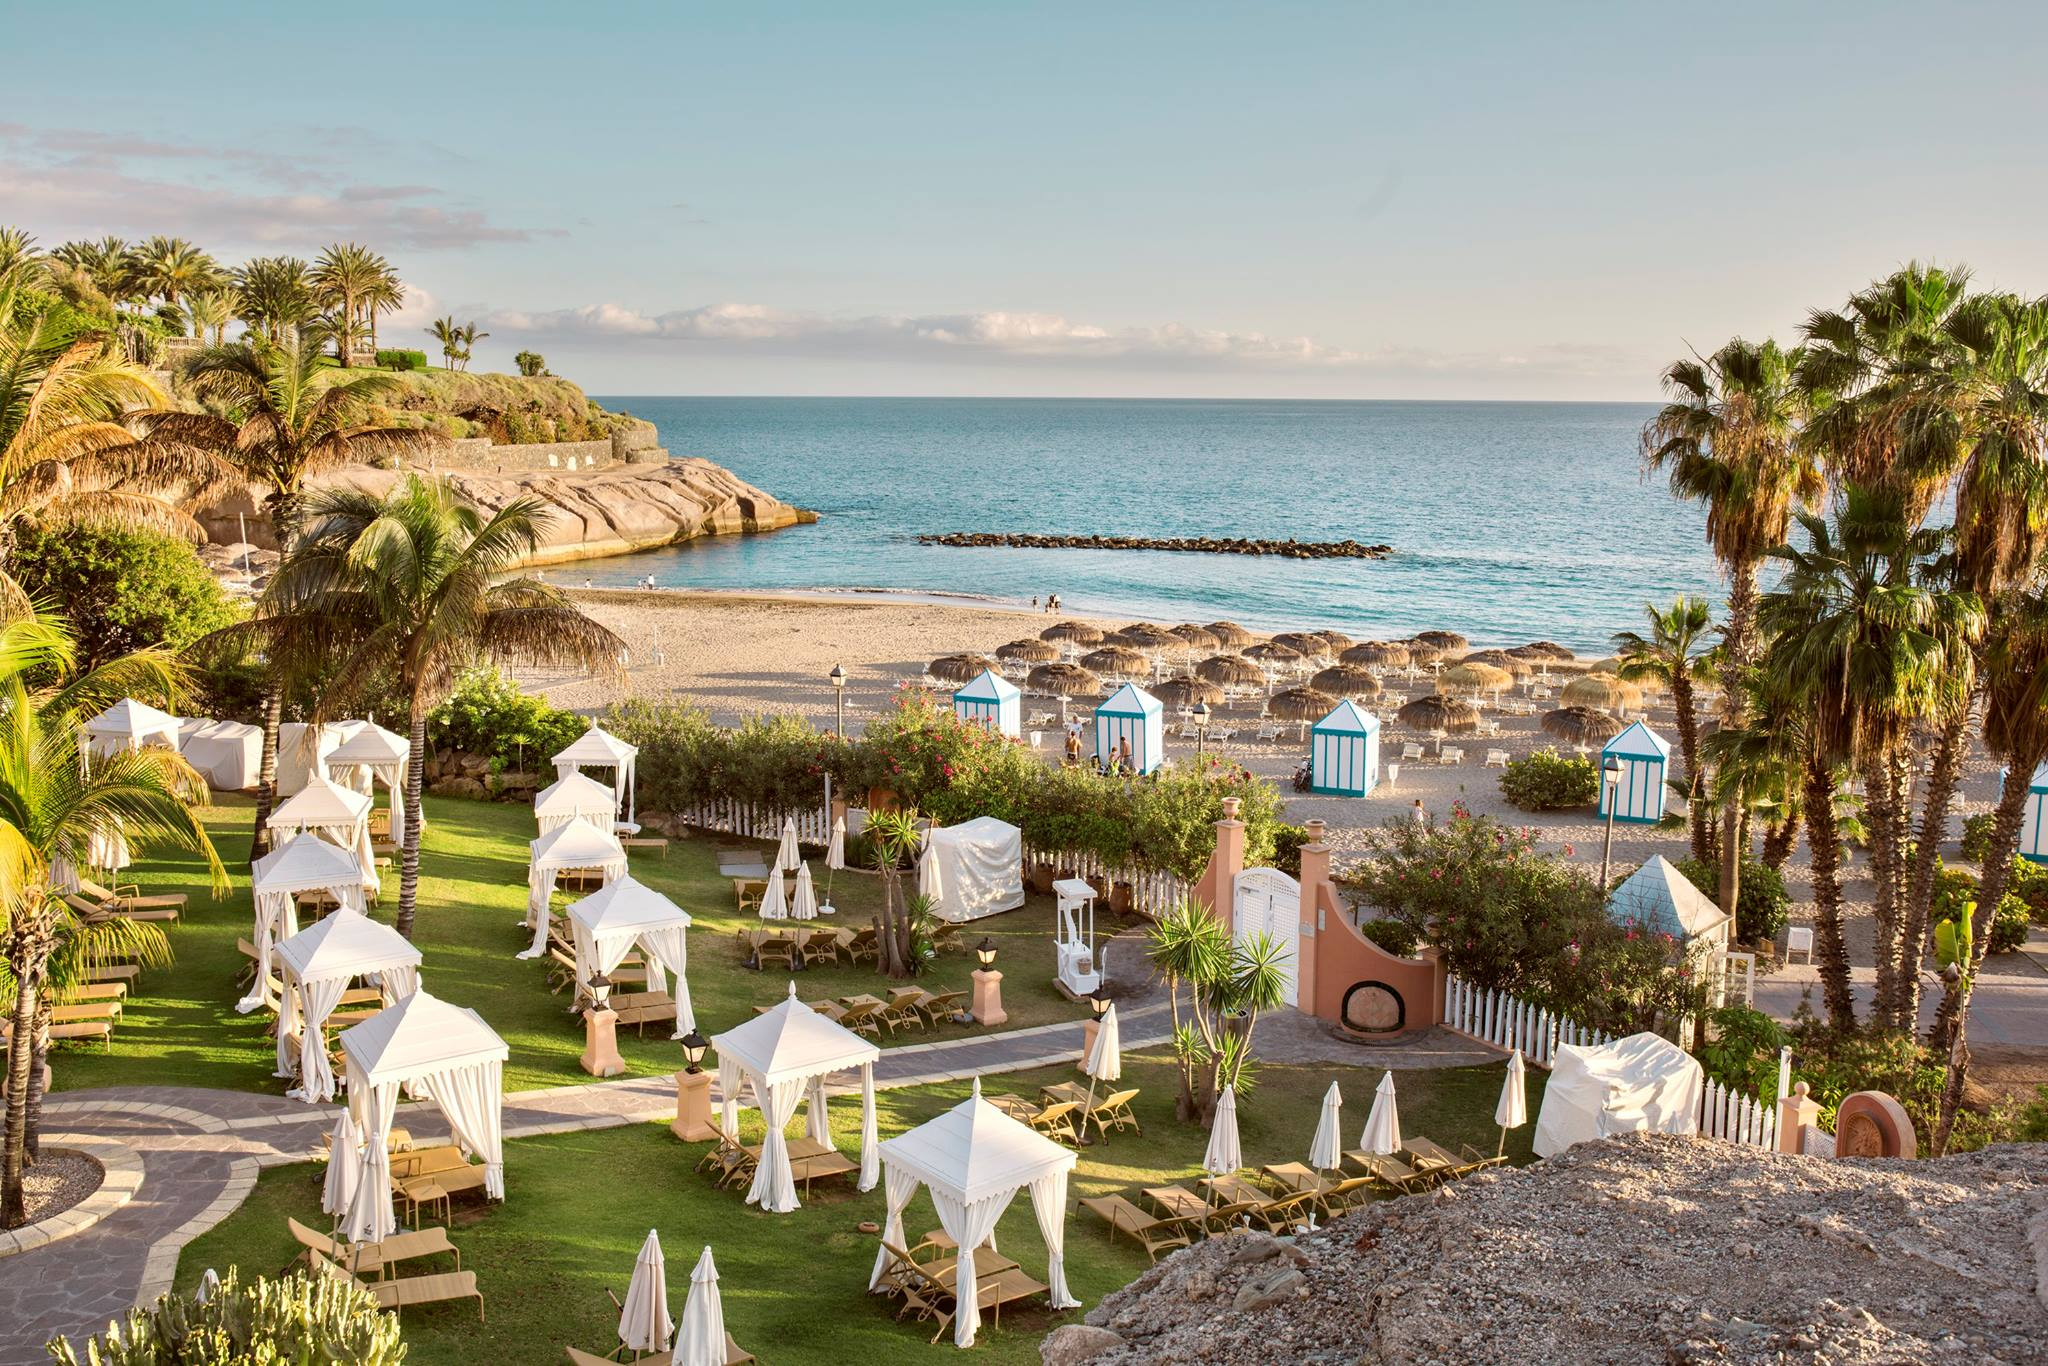 The most beautiful beach in Tenerife is just a few steps away